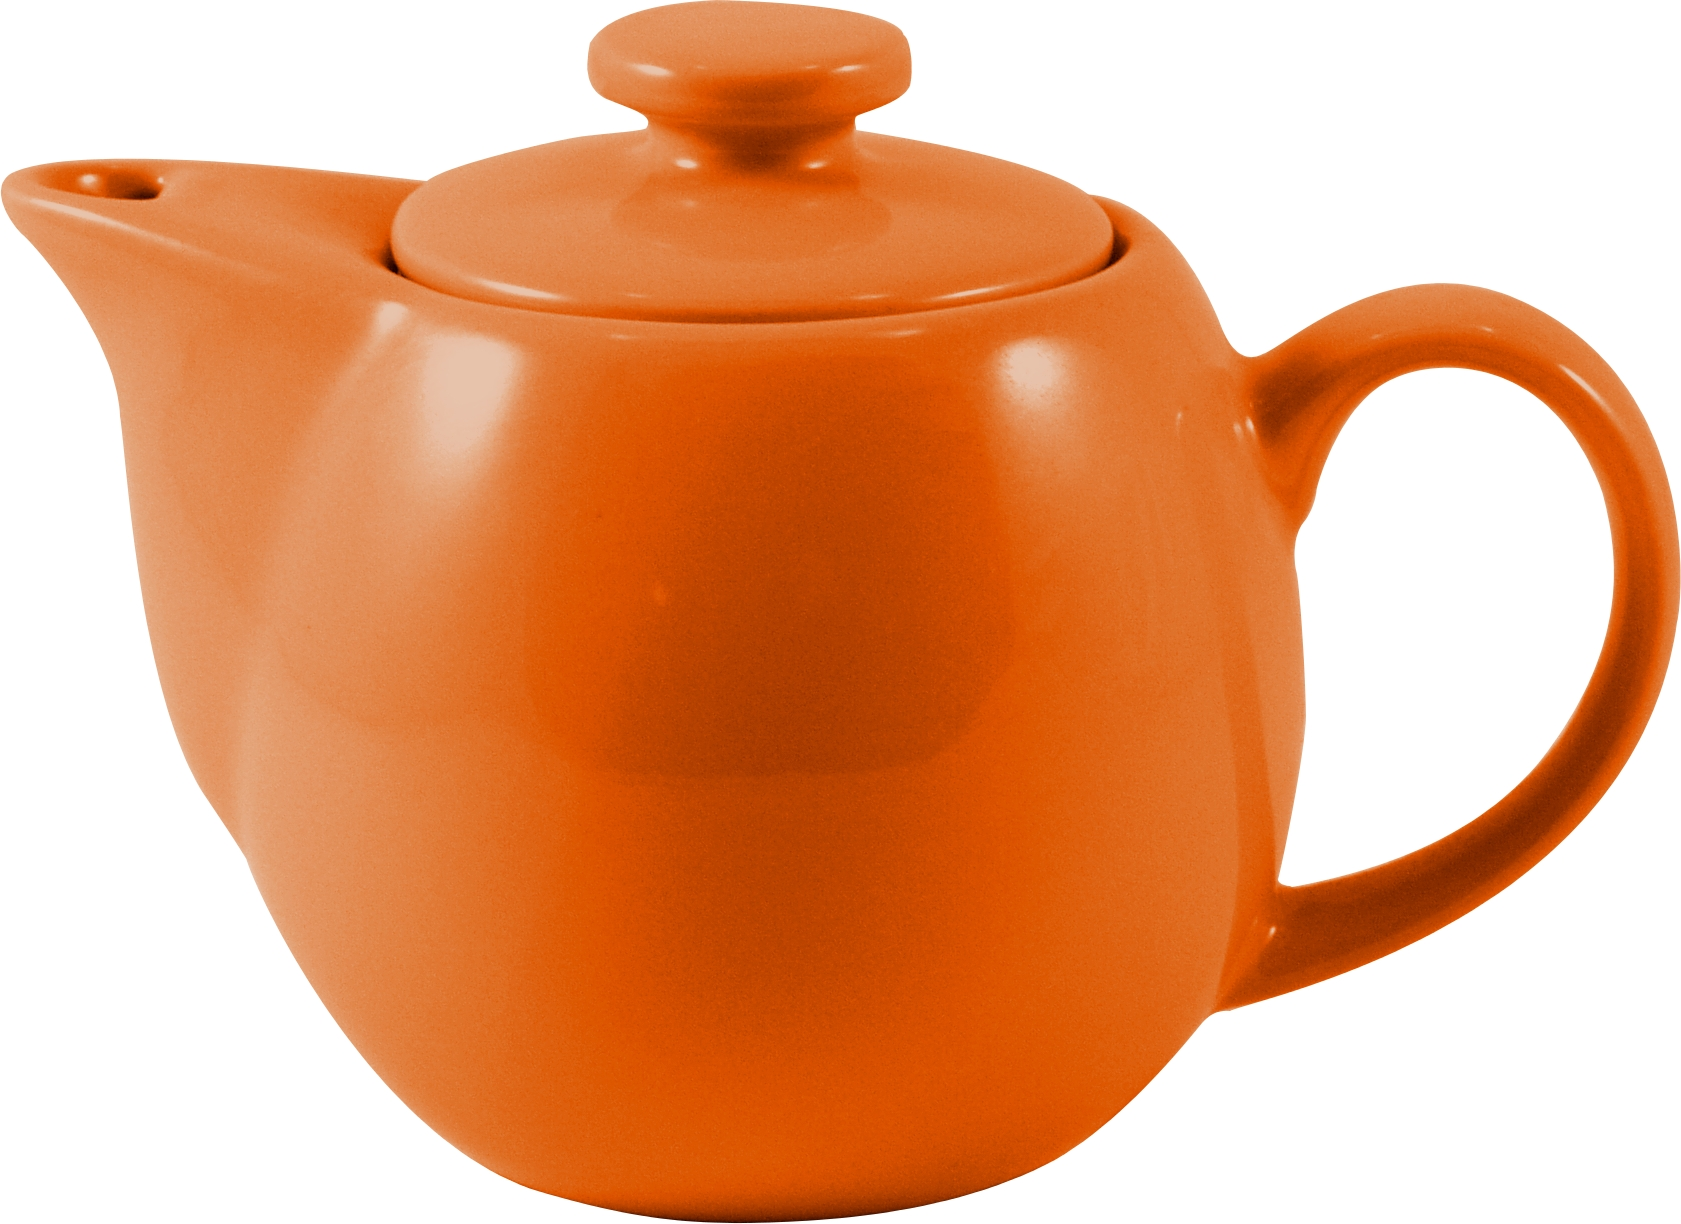 OmniWare Teaz Orange Stoneware 14 Ounce Teapot with Stainless Steel Mesh Infuser